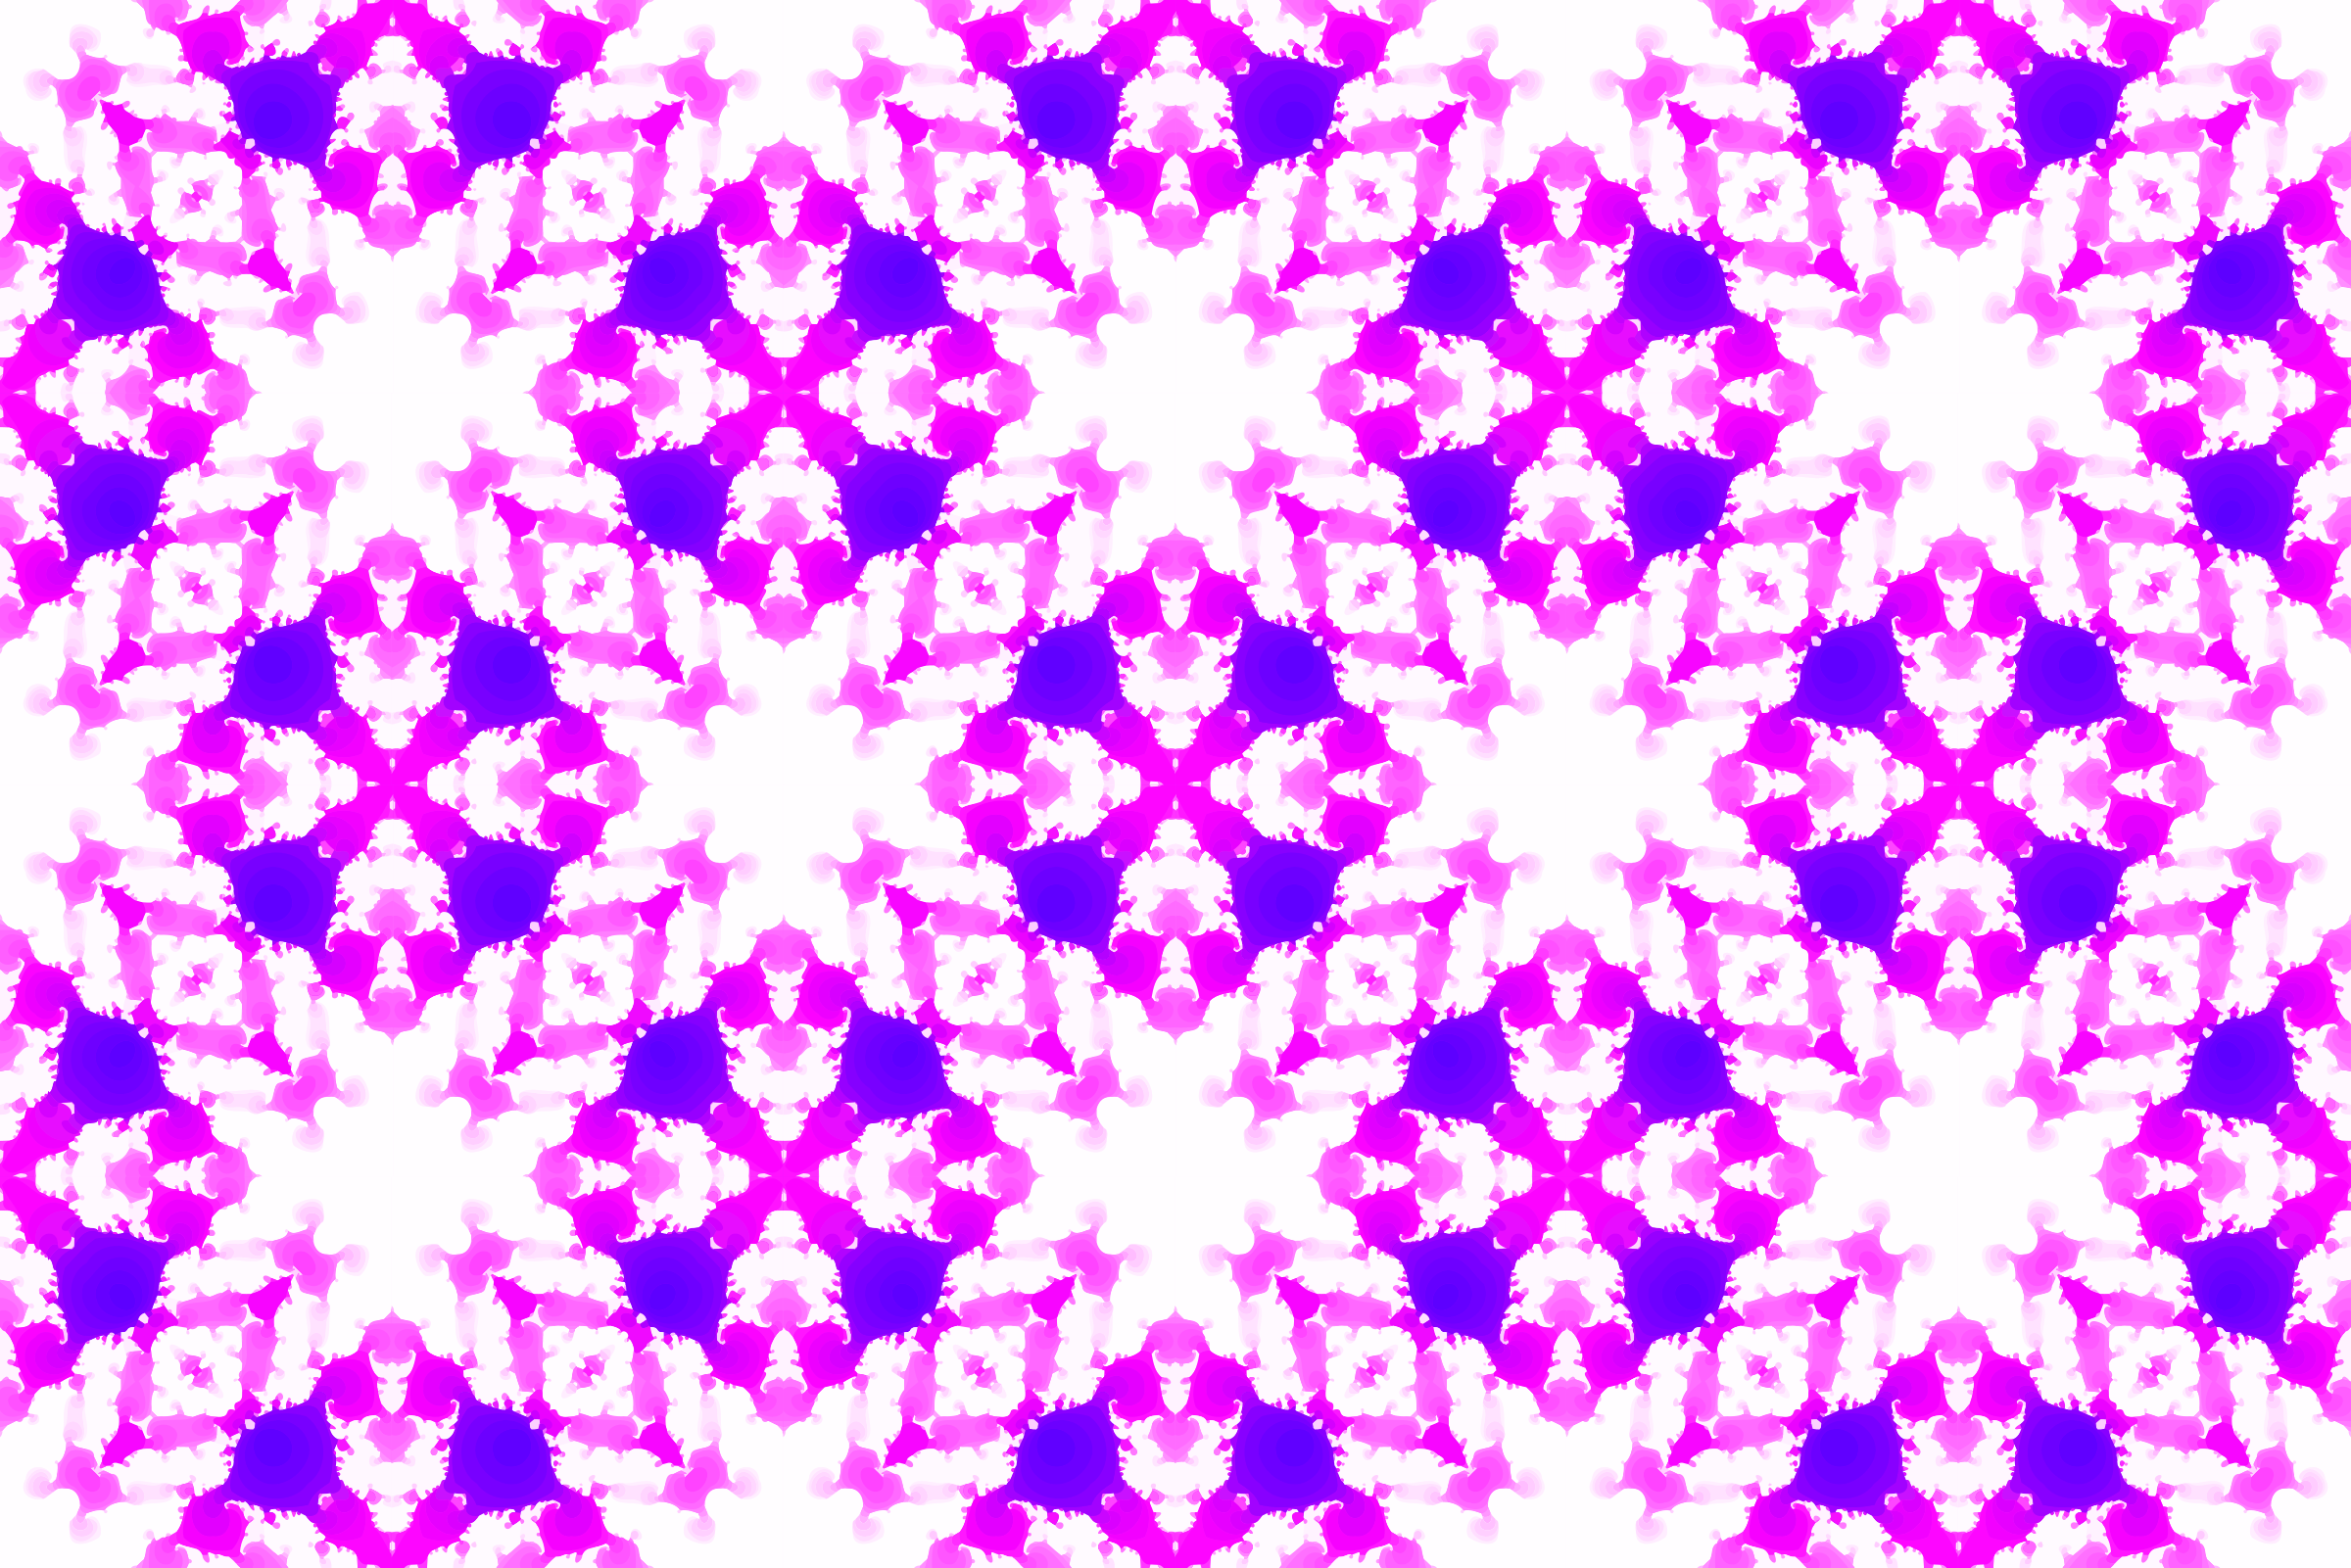 Background pattern 150 (colour 5) by Firkin